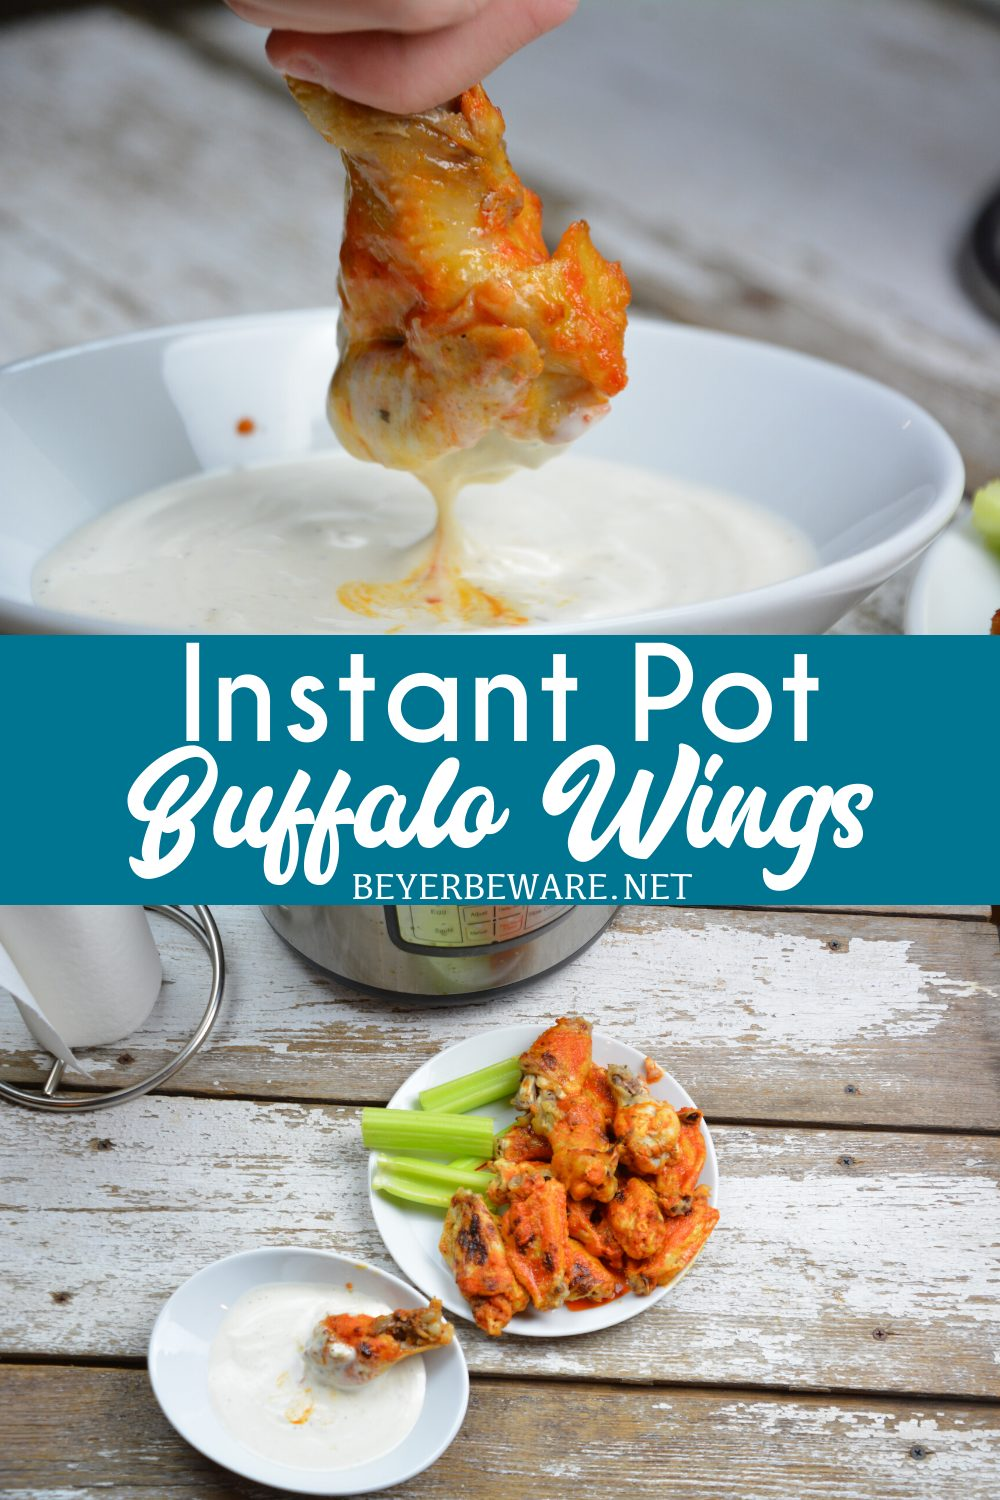 Instant Pot Buffalo Wings are a quick buffalo wings recipe yet fall off the bone tenderness all while being drenched in an easy buffalo sauce.